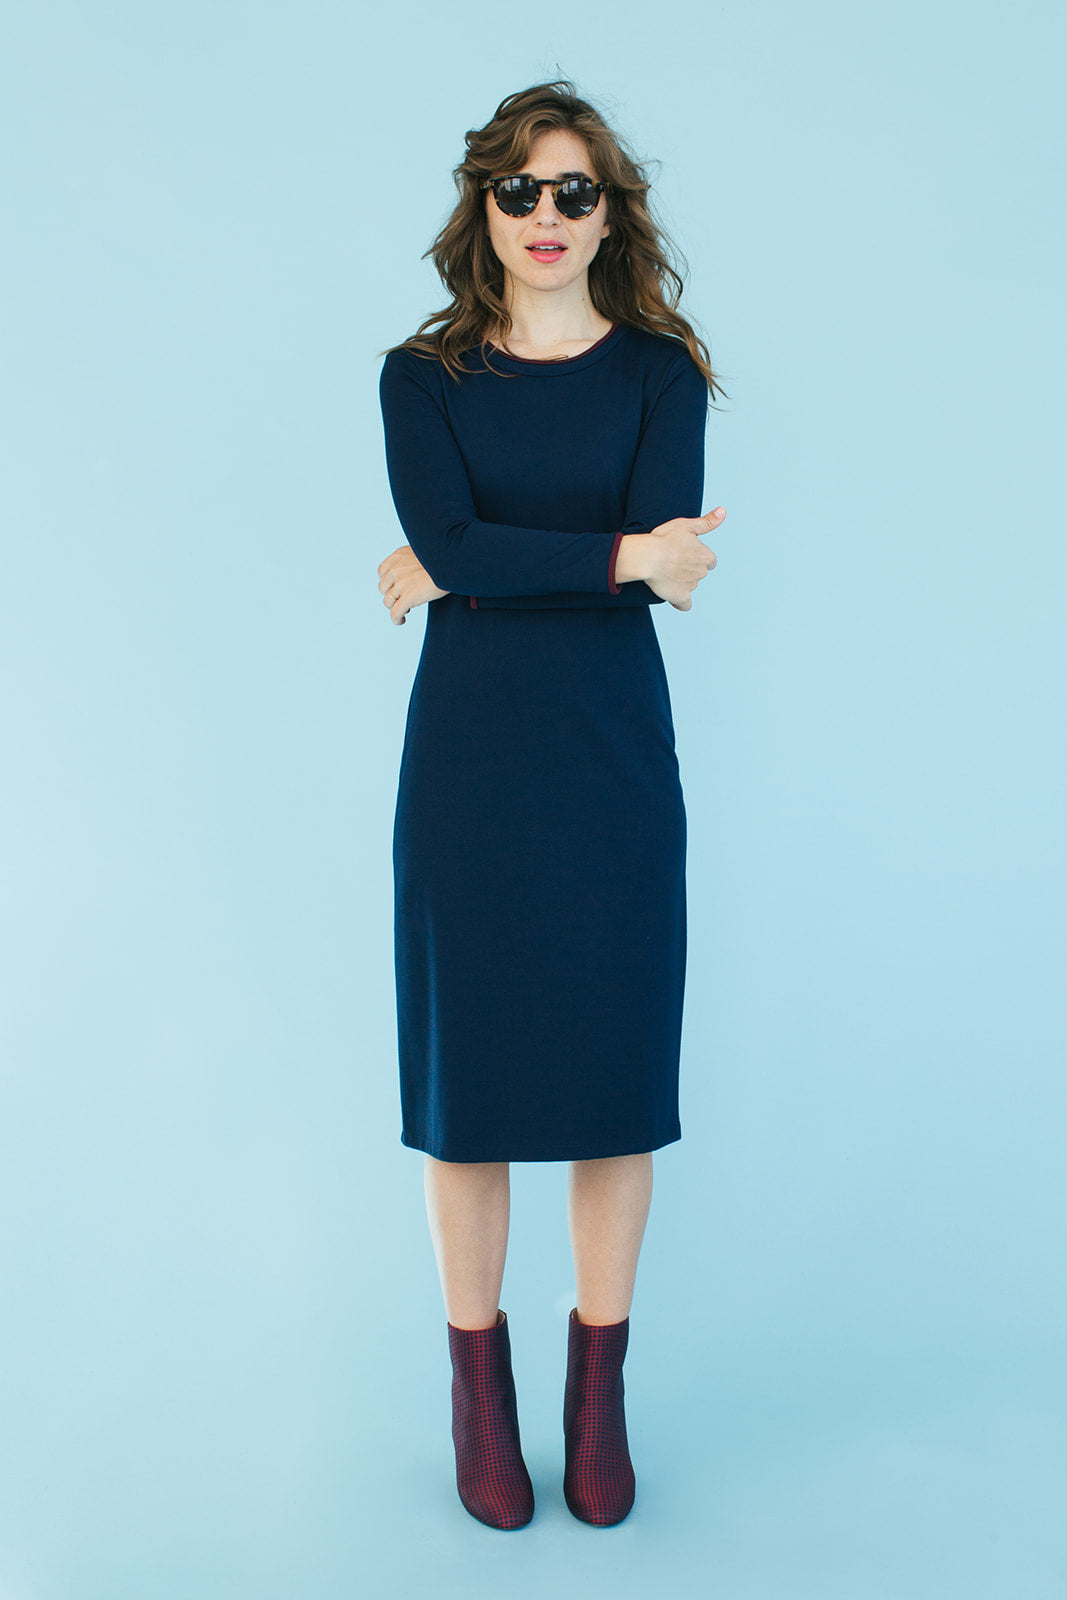 Sonnet James - MAY - NAVY W/ MAROON (LONG SLEEVE) - Dress